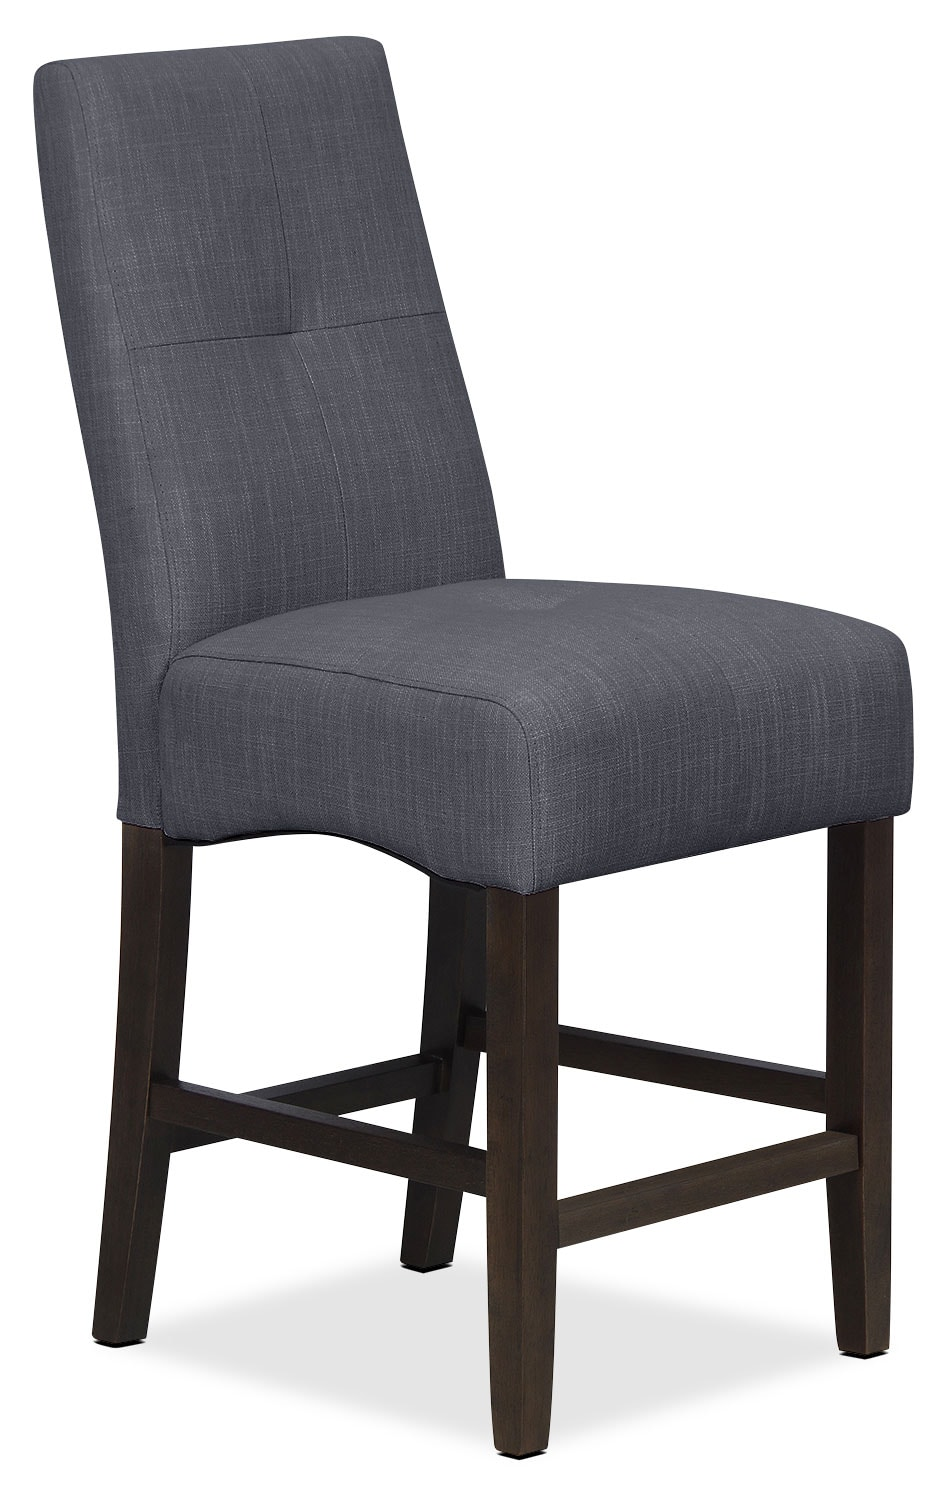 Dining Room Furniture - Soho Counter-Height Dining Chair – Charcoal